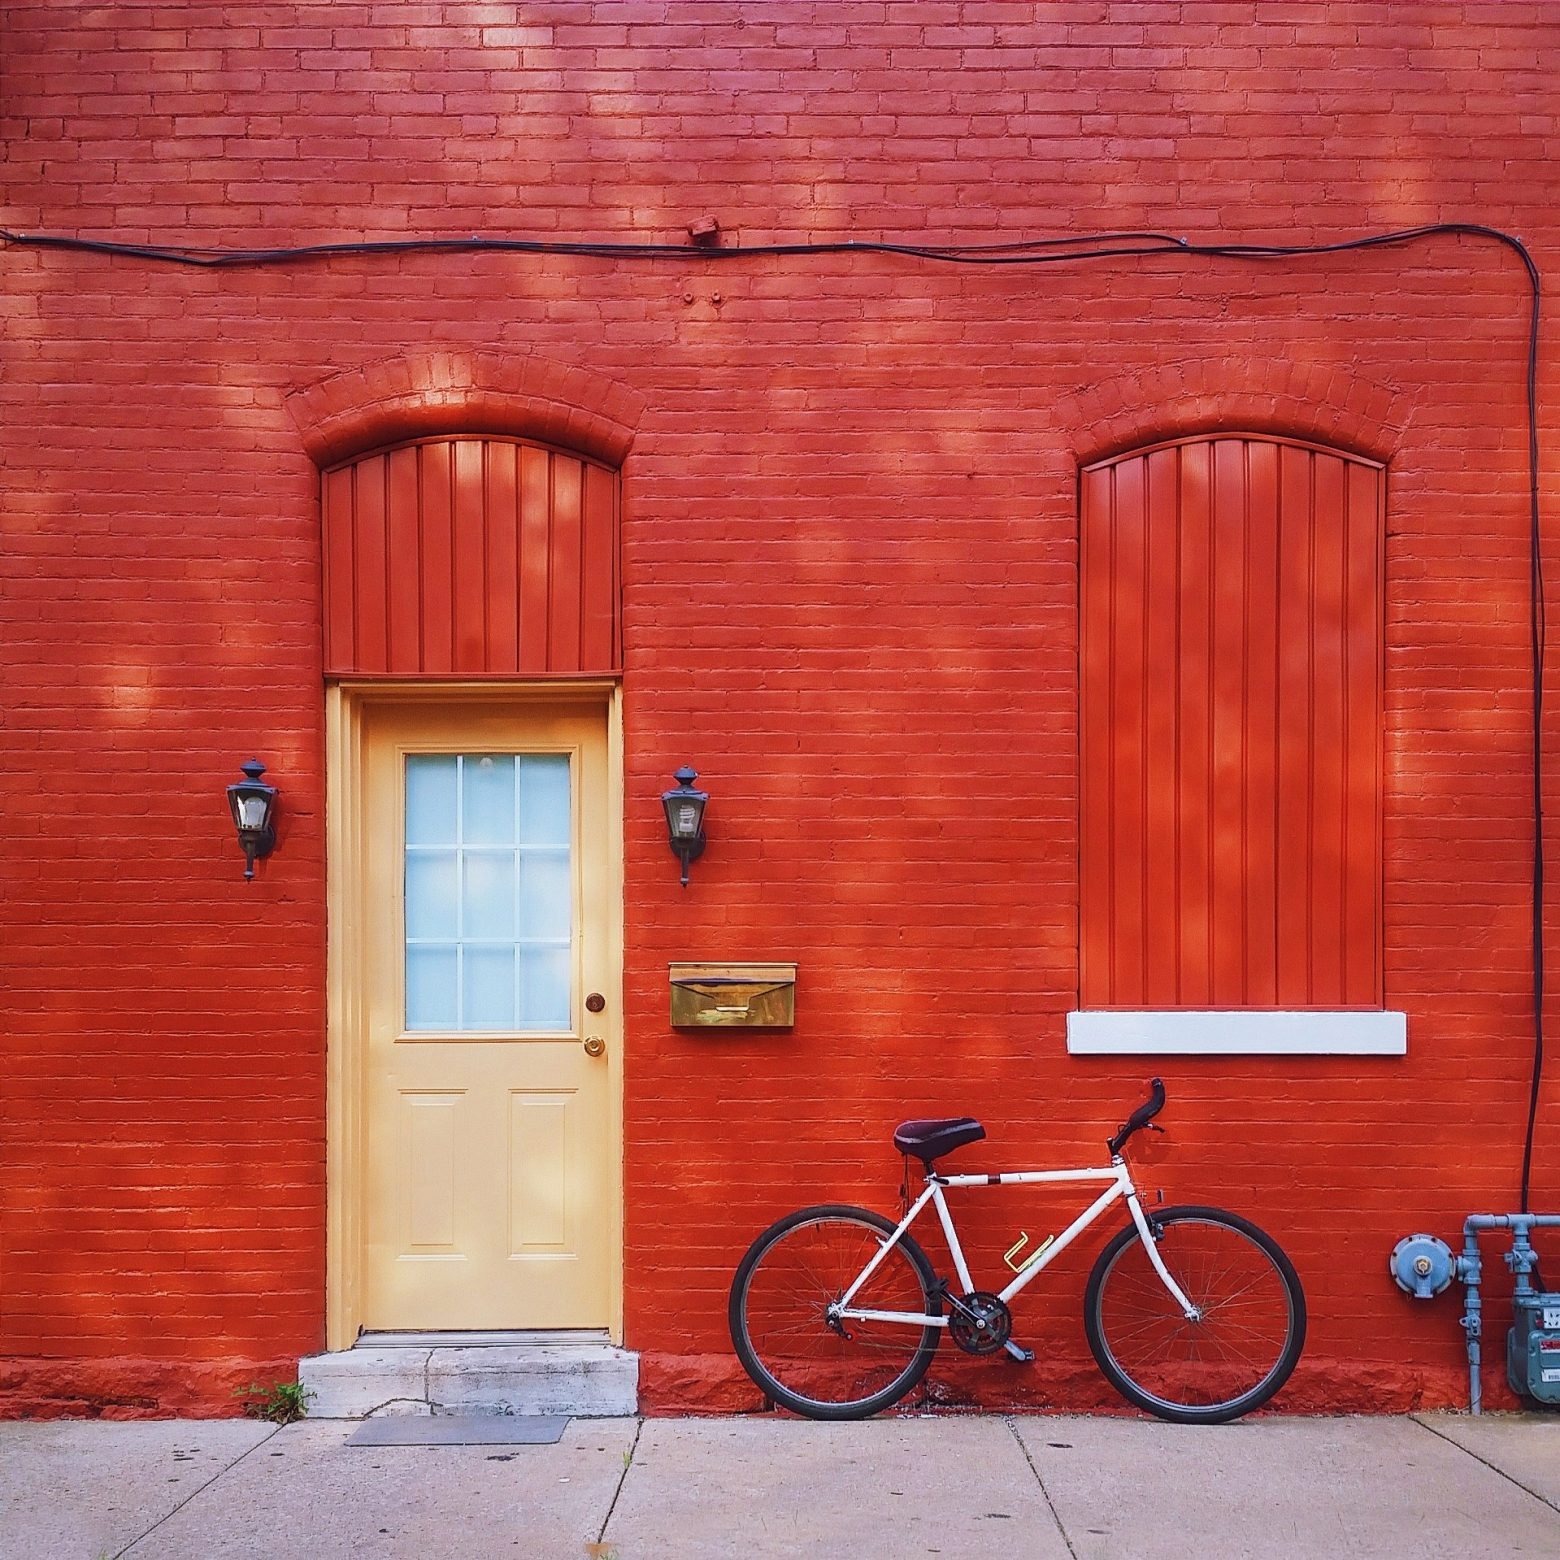 Bicycle in front of the red house